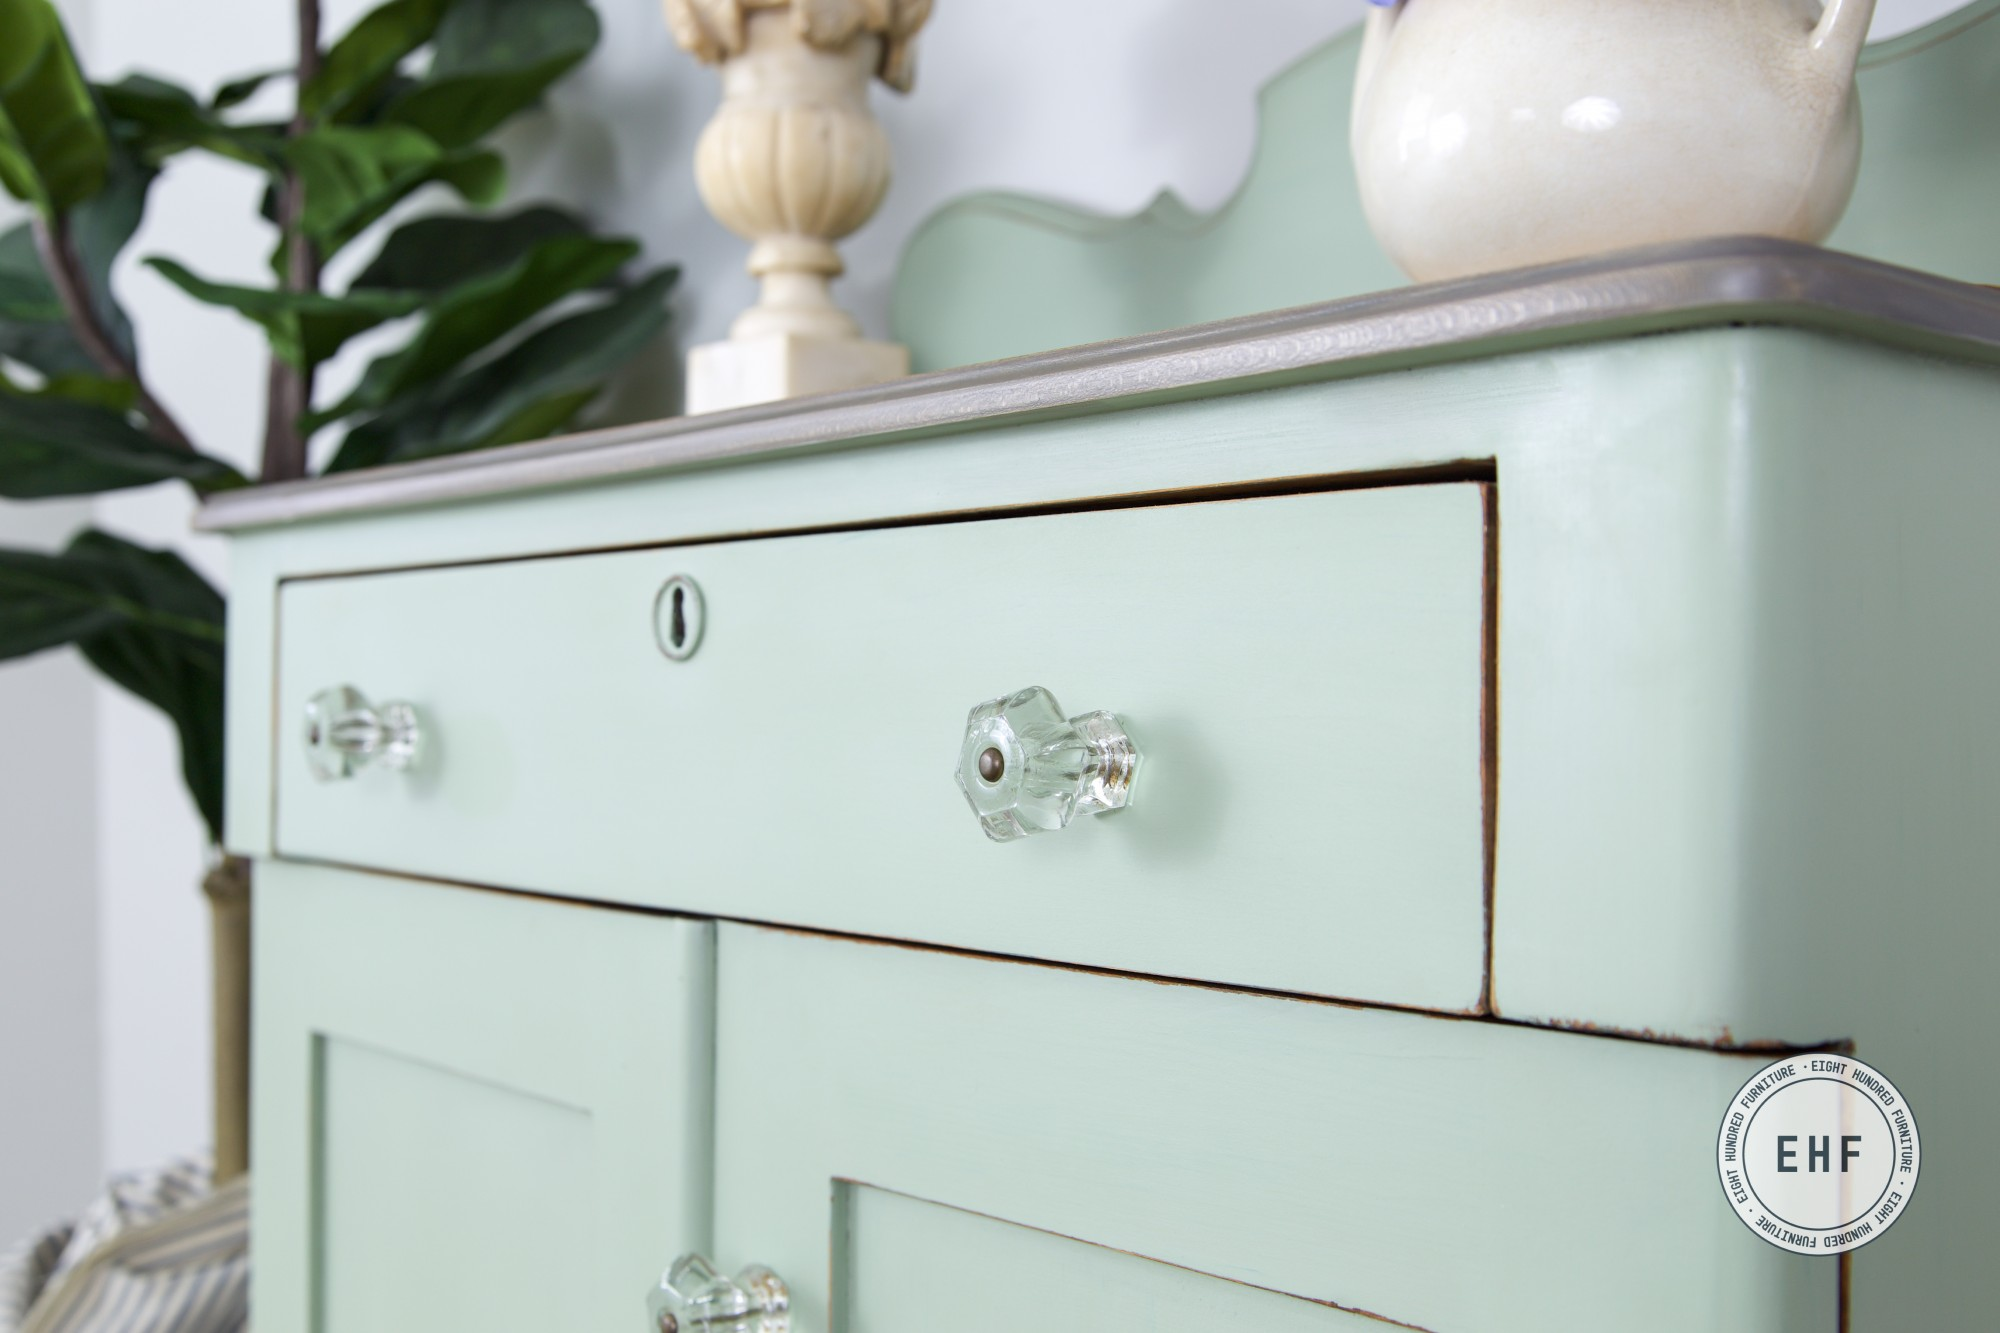 Layla's Mint, Miss Mustard Seed's Milk Paint, Beeswax, Graystone Water Based Wood Stain, General Finishes, Eight Hundred Furniture, Washstand, Glass Knobs